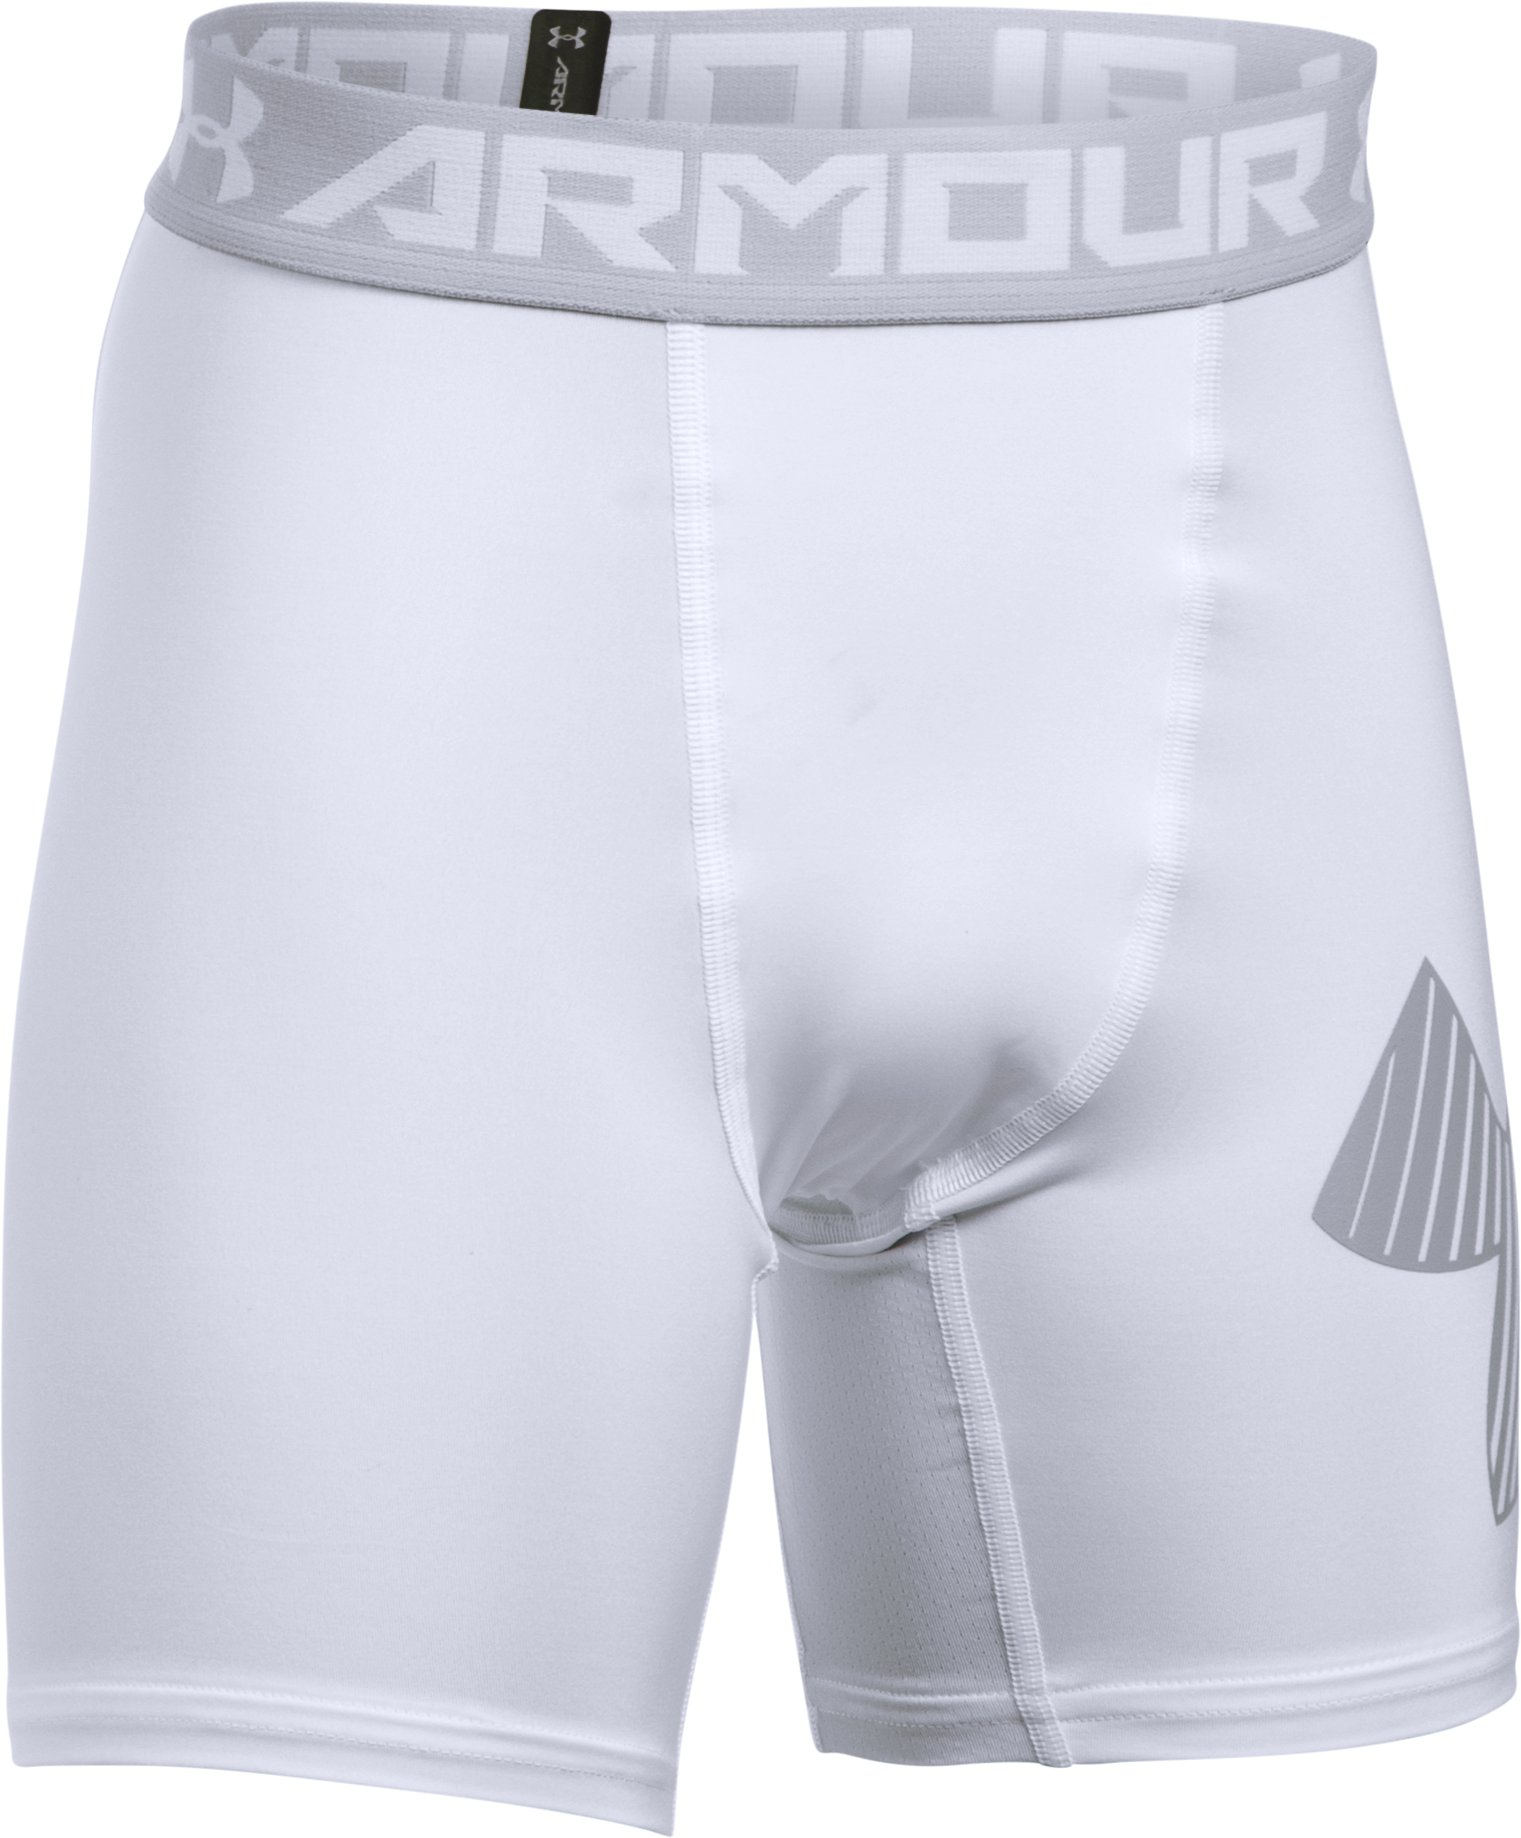 Boys' HeatGear® Armour Mid Shorts, White, zoomed image